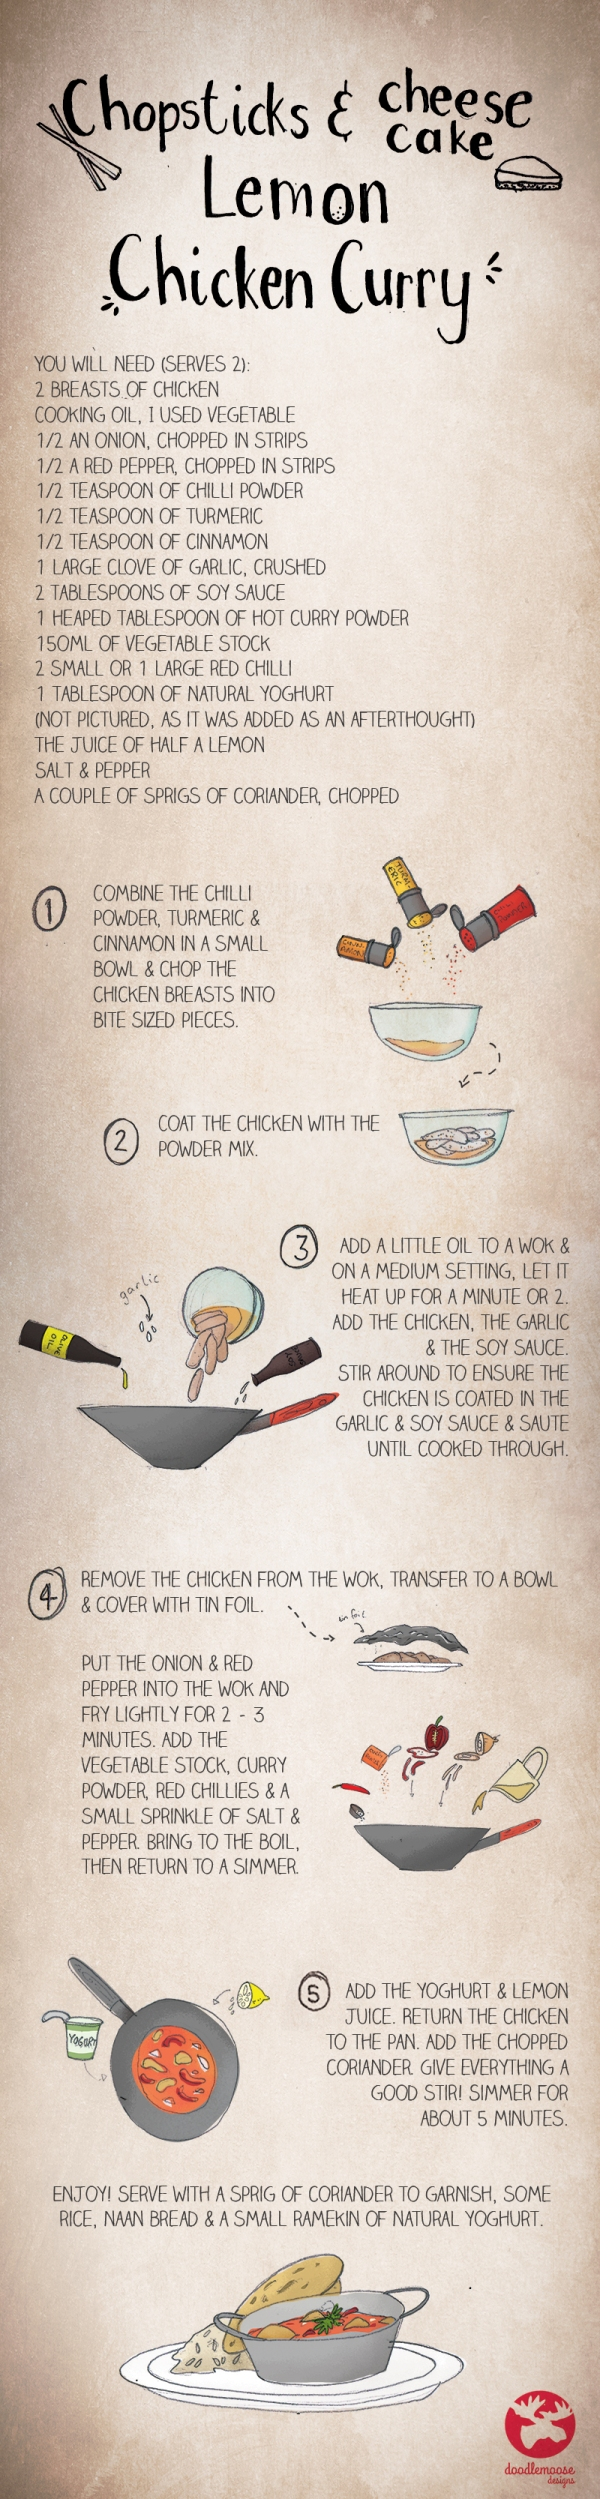 Chicken curry recipe illustration